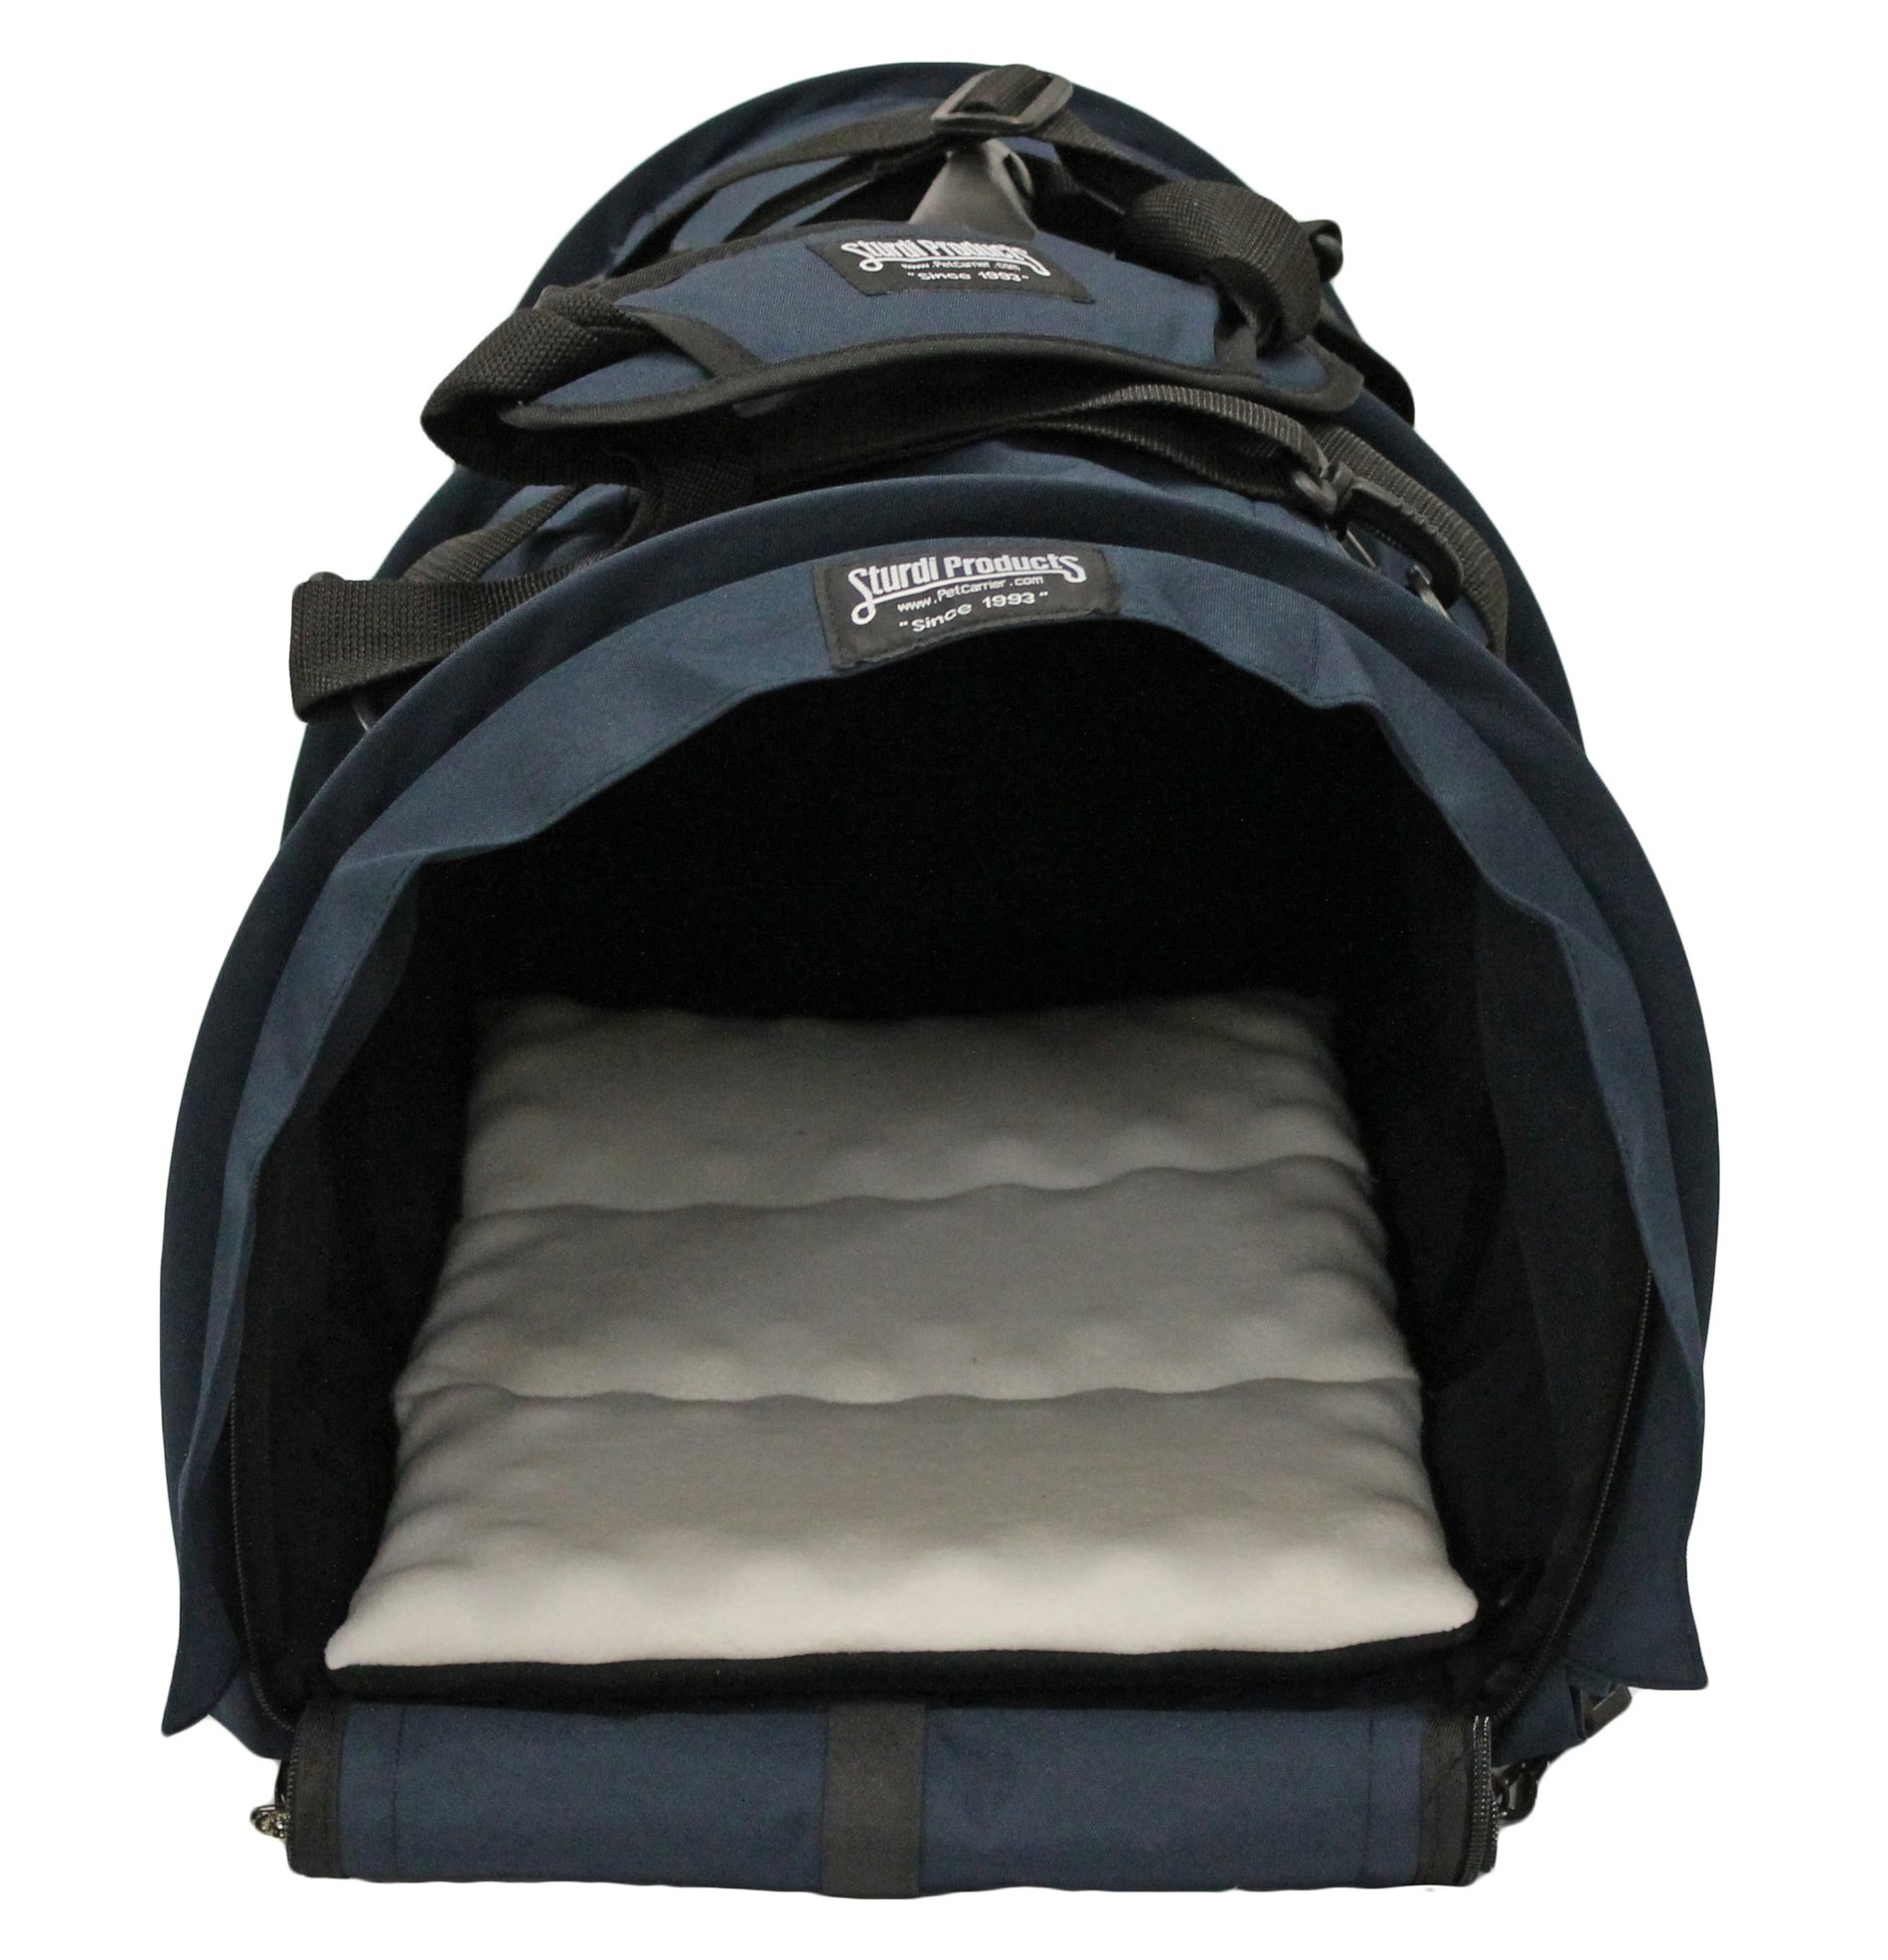 Sturdi Products Cube Pet Carrier, X-Large, Navy by Sturdi Products